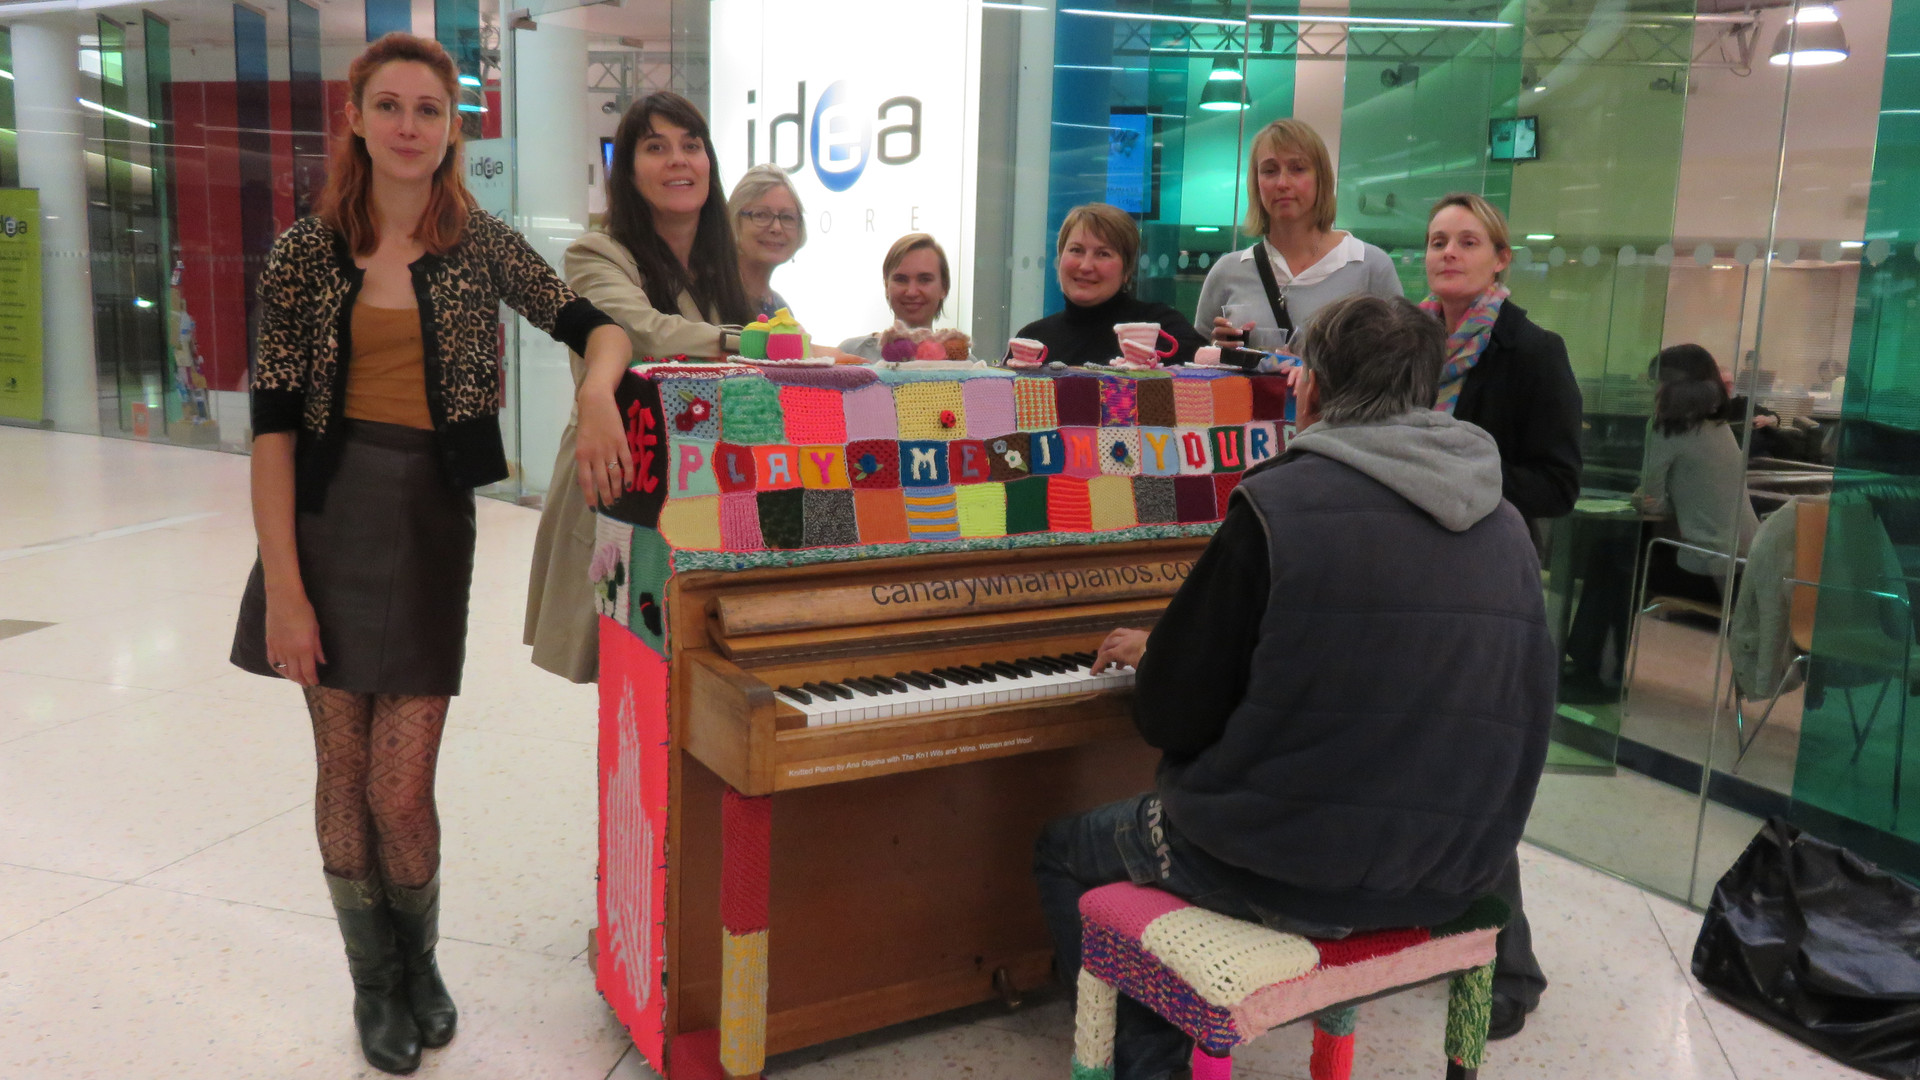 At the launch event for the knitted piano